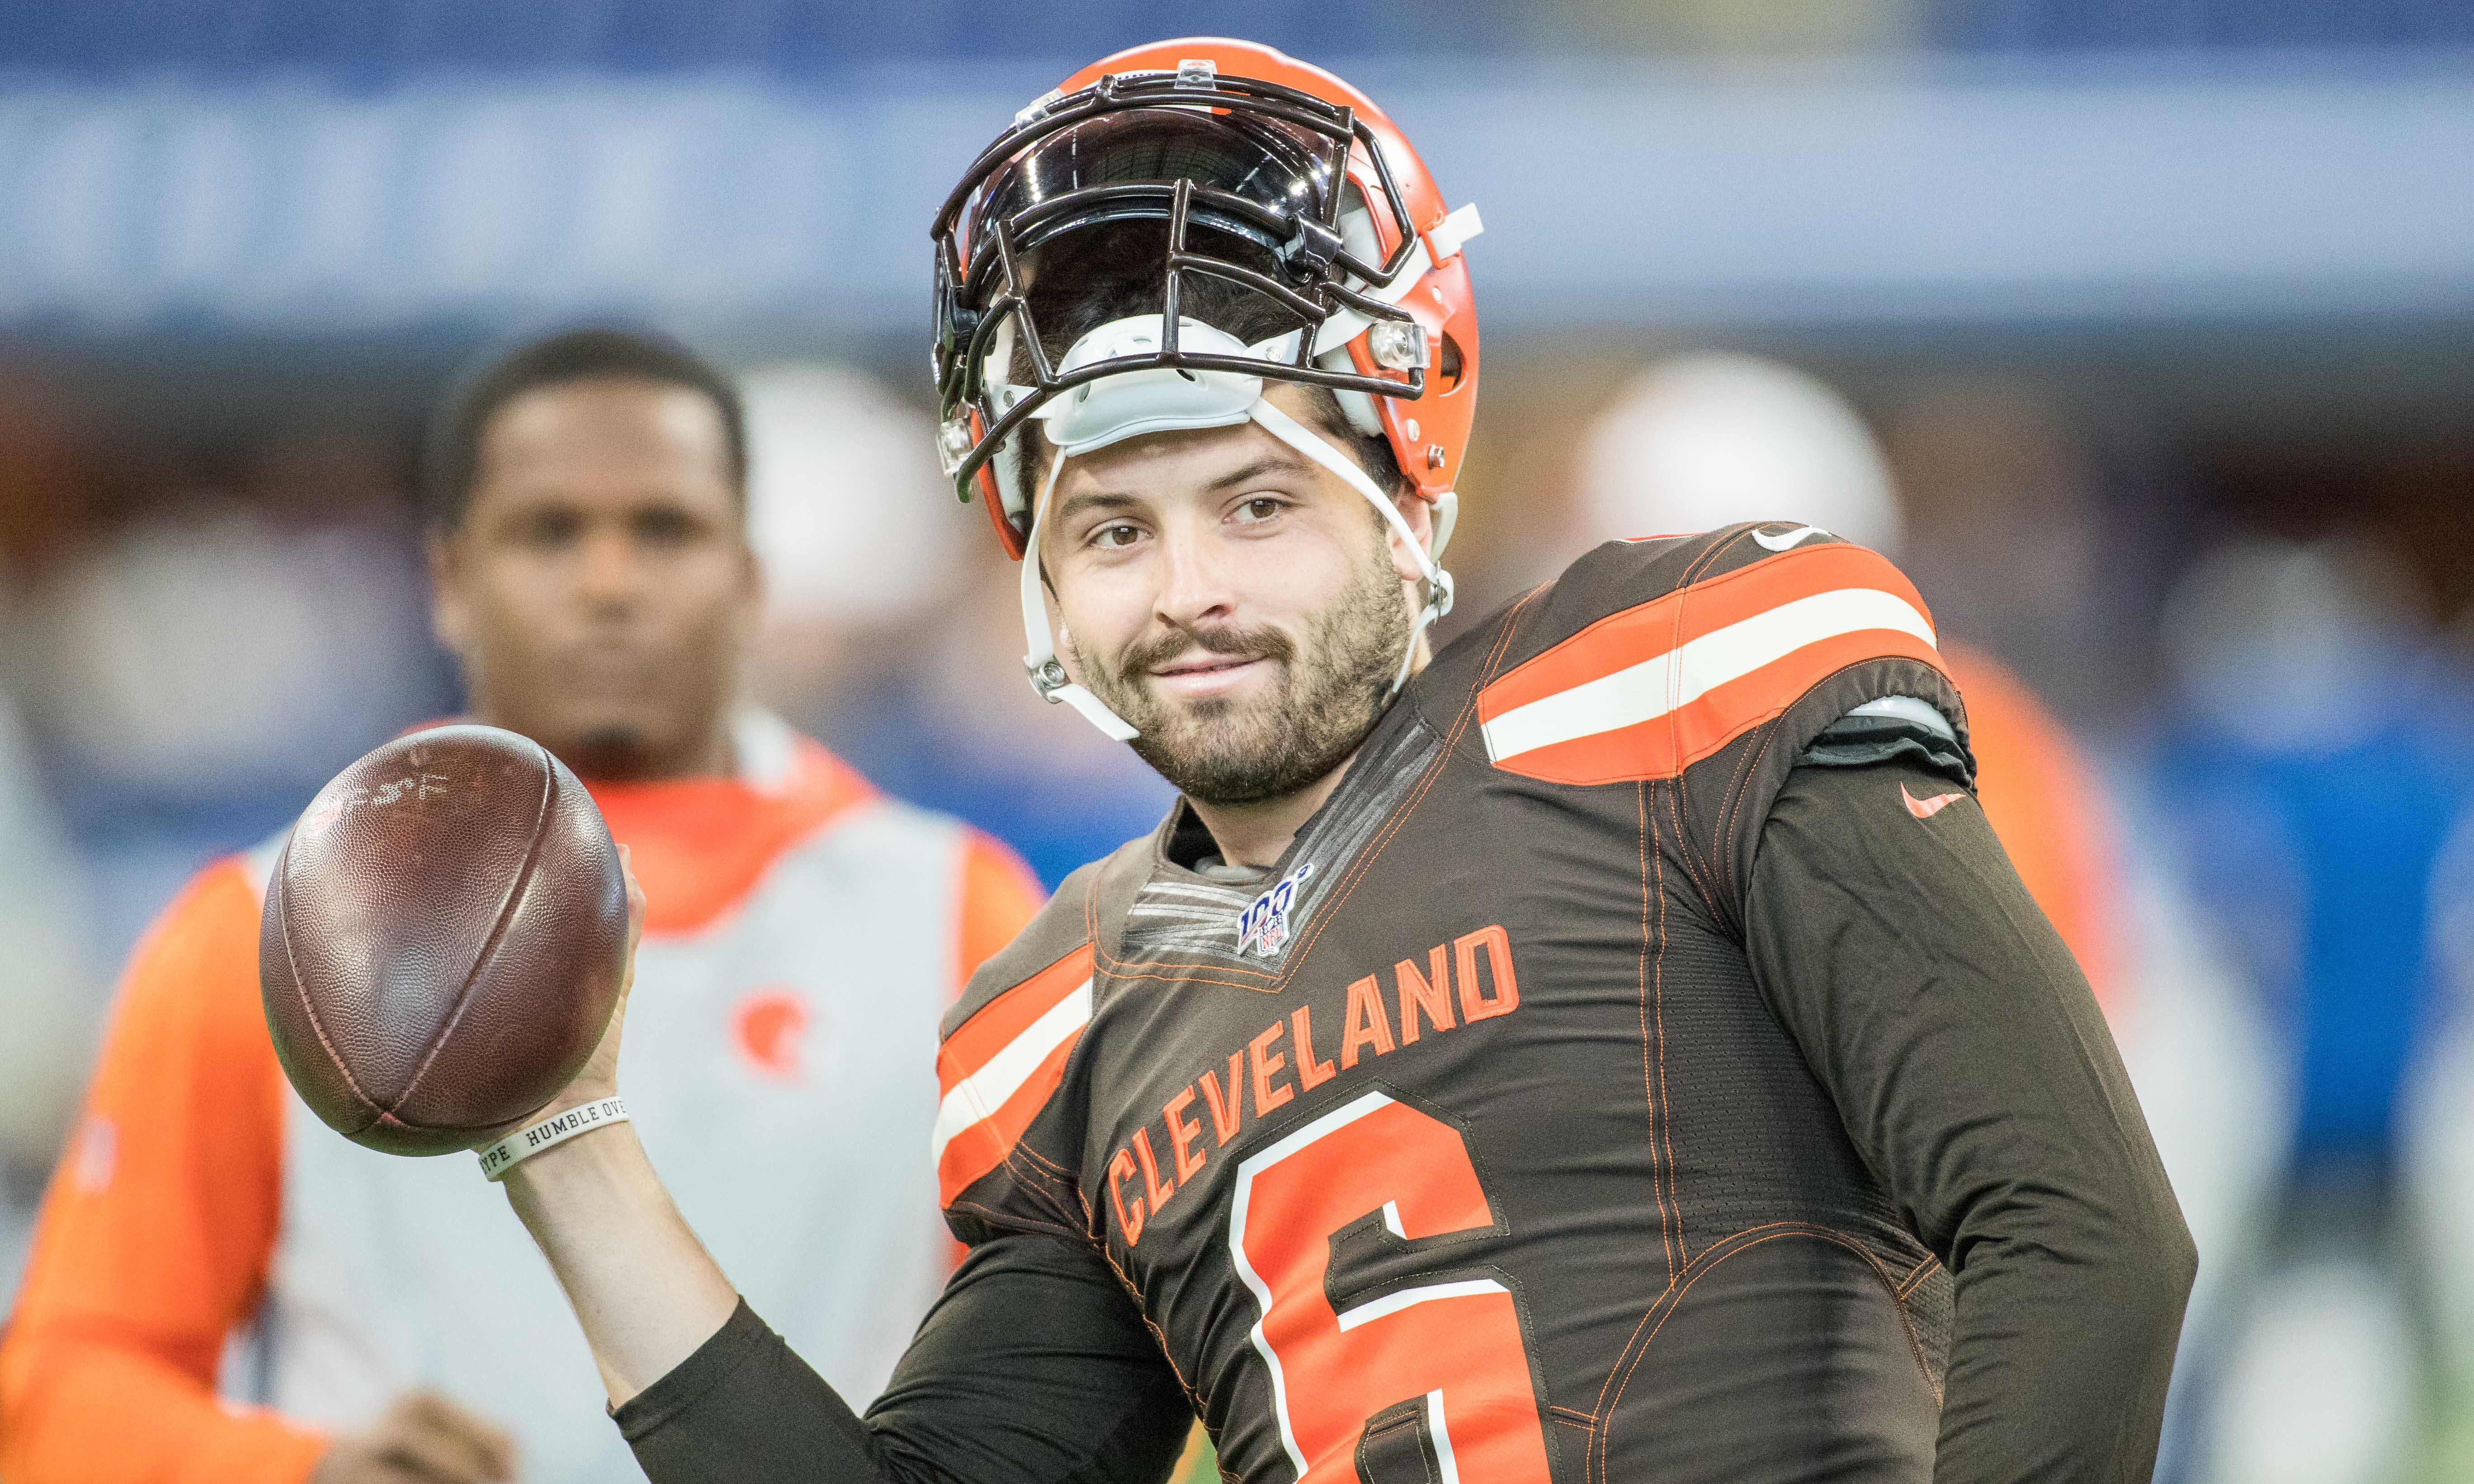 'Blows my mind': Cleveland's Baker Mayfield drags Giants for Daniel Jones pick